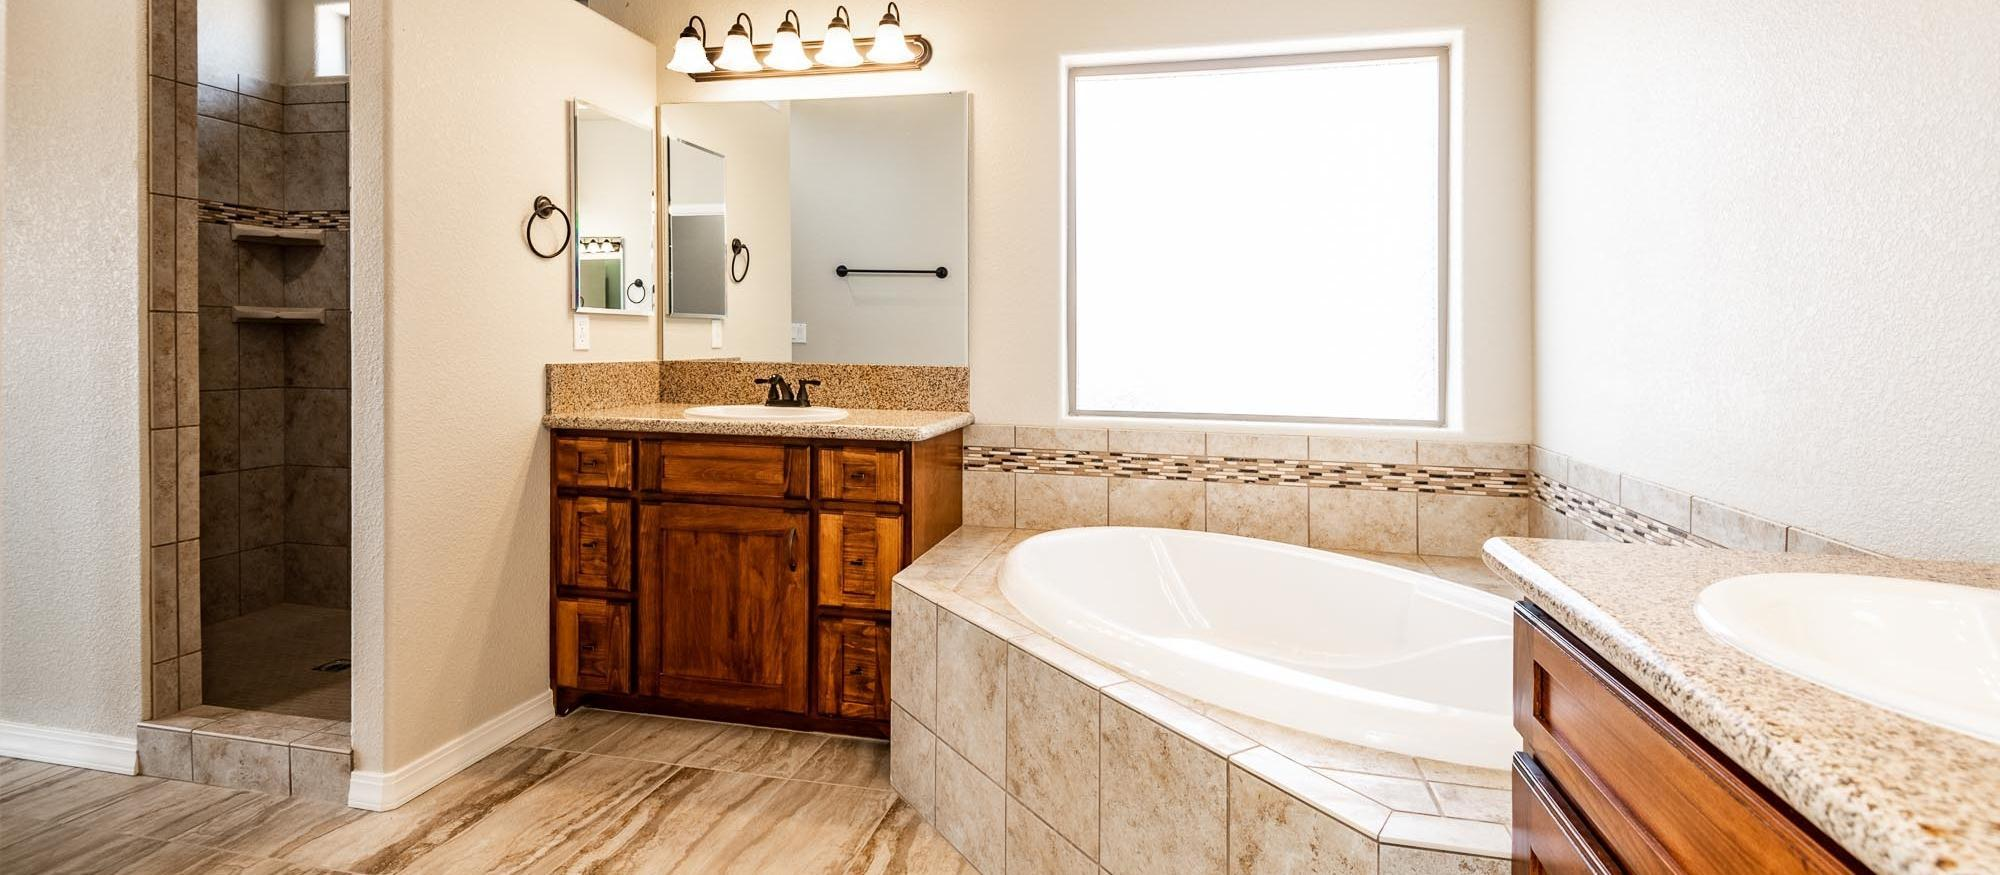 Bathroom featured in the Legacy 2977 Game Room By Angle Homes in Kingman-Lake Havasu City, AZ